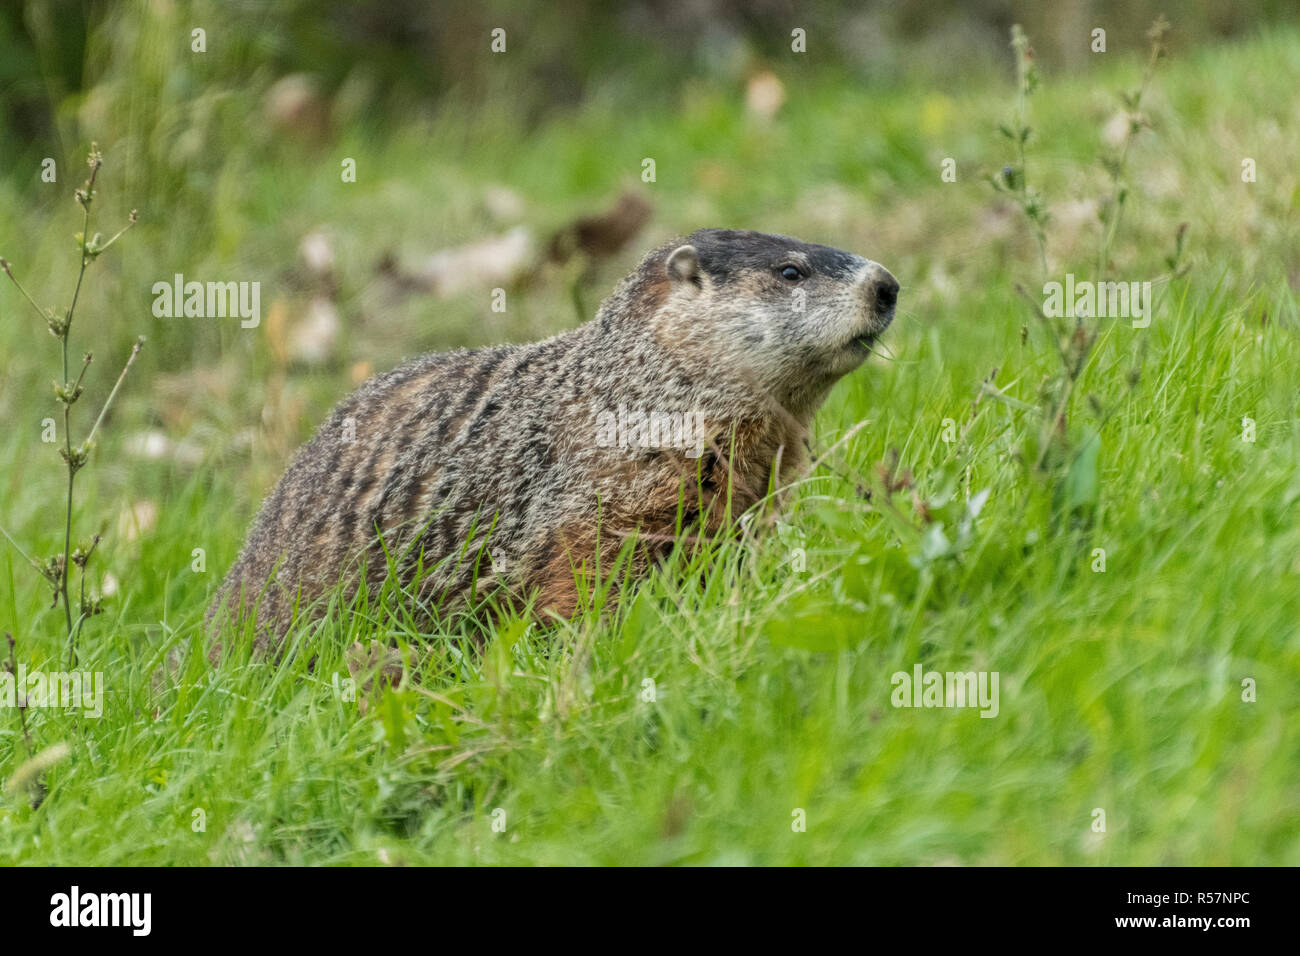 Woodchuck foraging in grassy field. - Stock Image